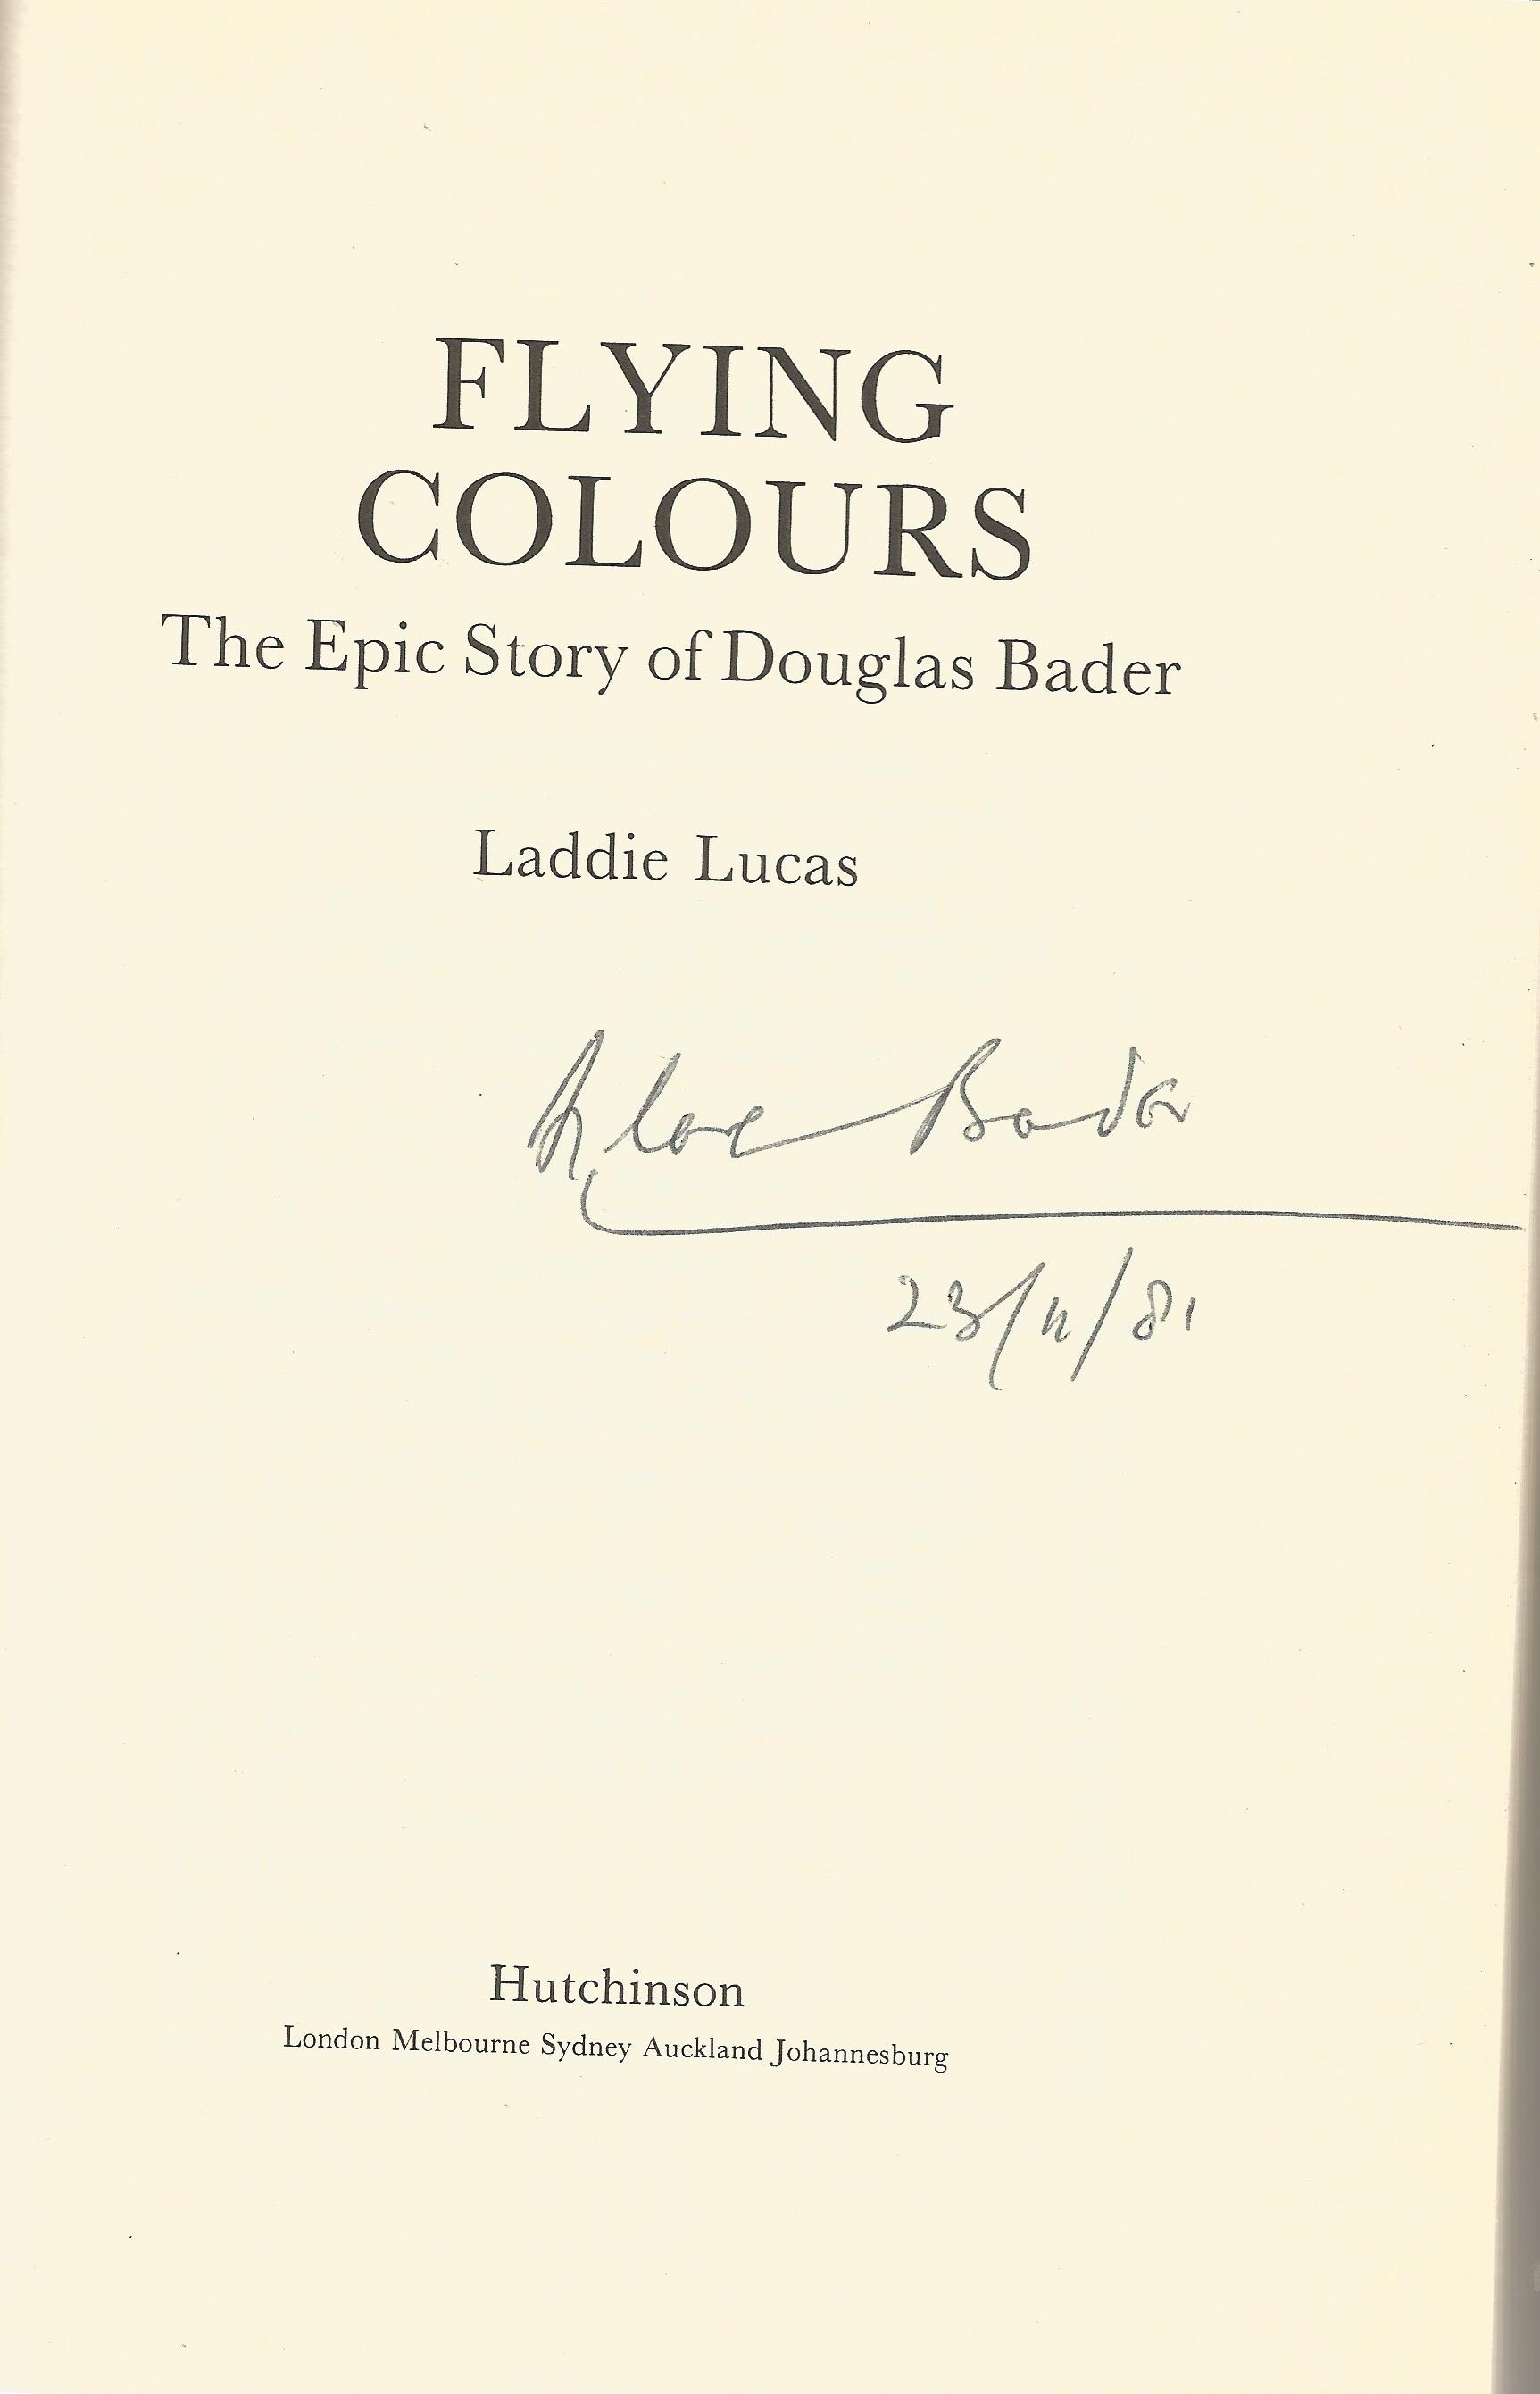 Lot 41 - World War Two Hardback book Flying Colours The Epic story of Douglas Bader signed on the inside